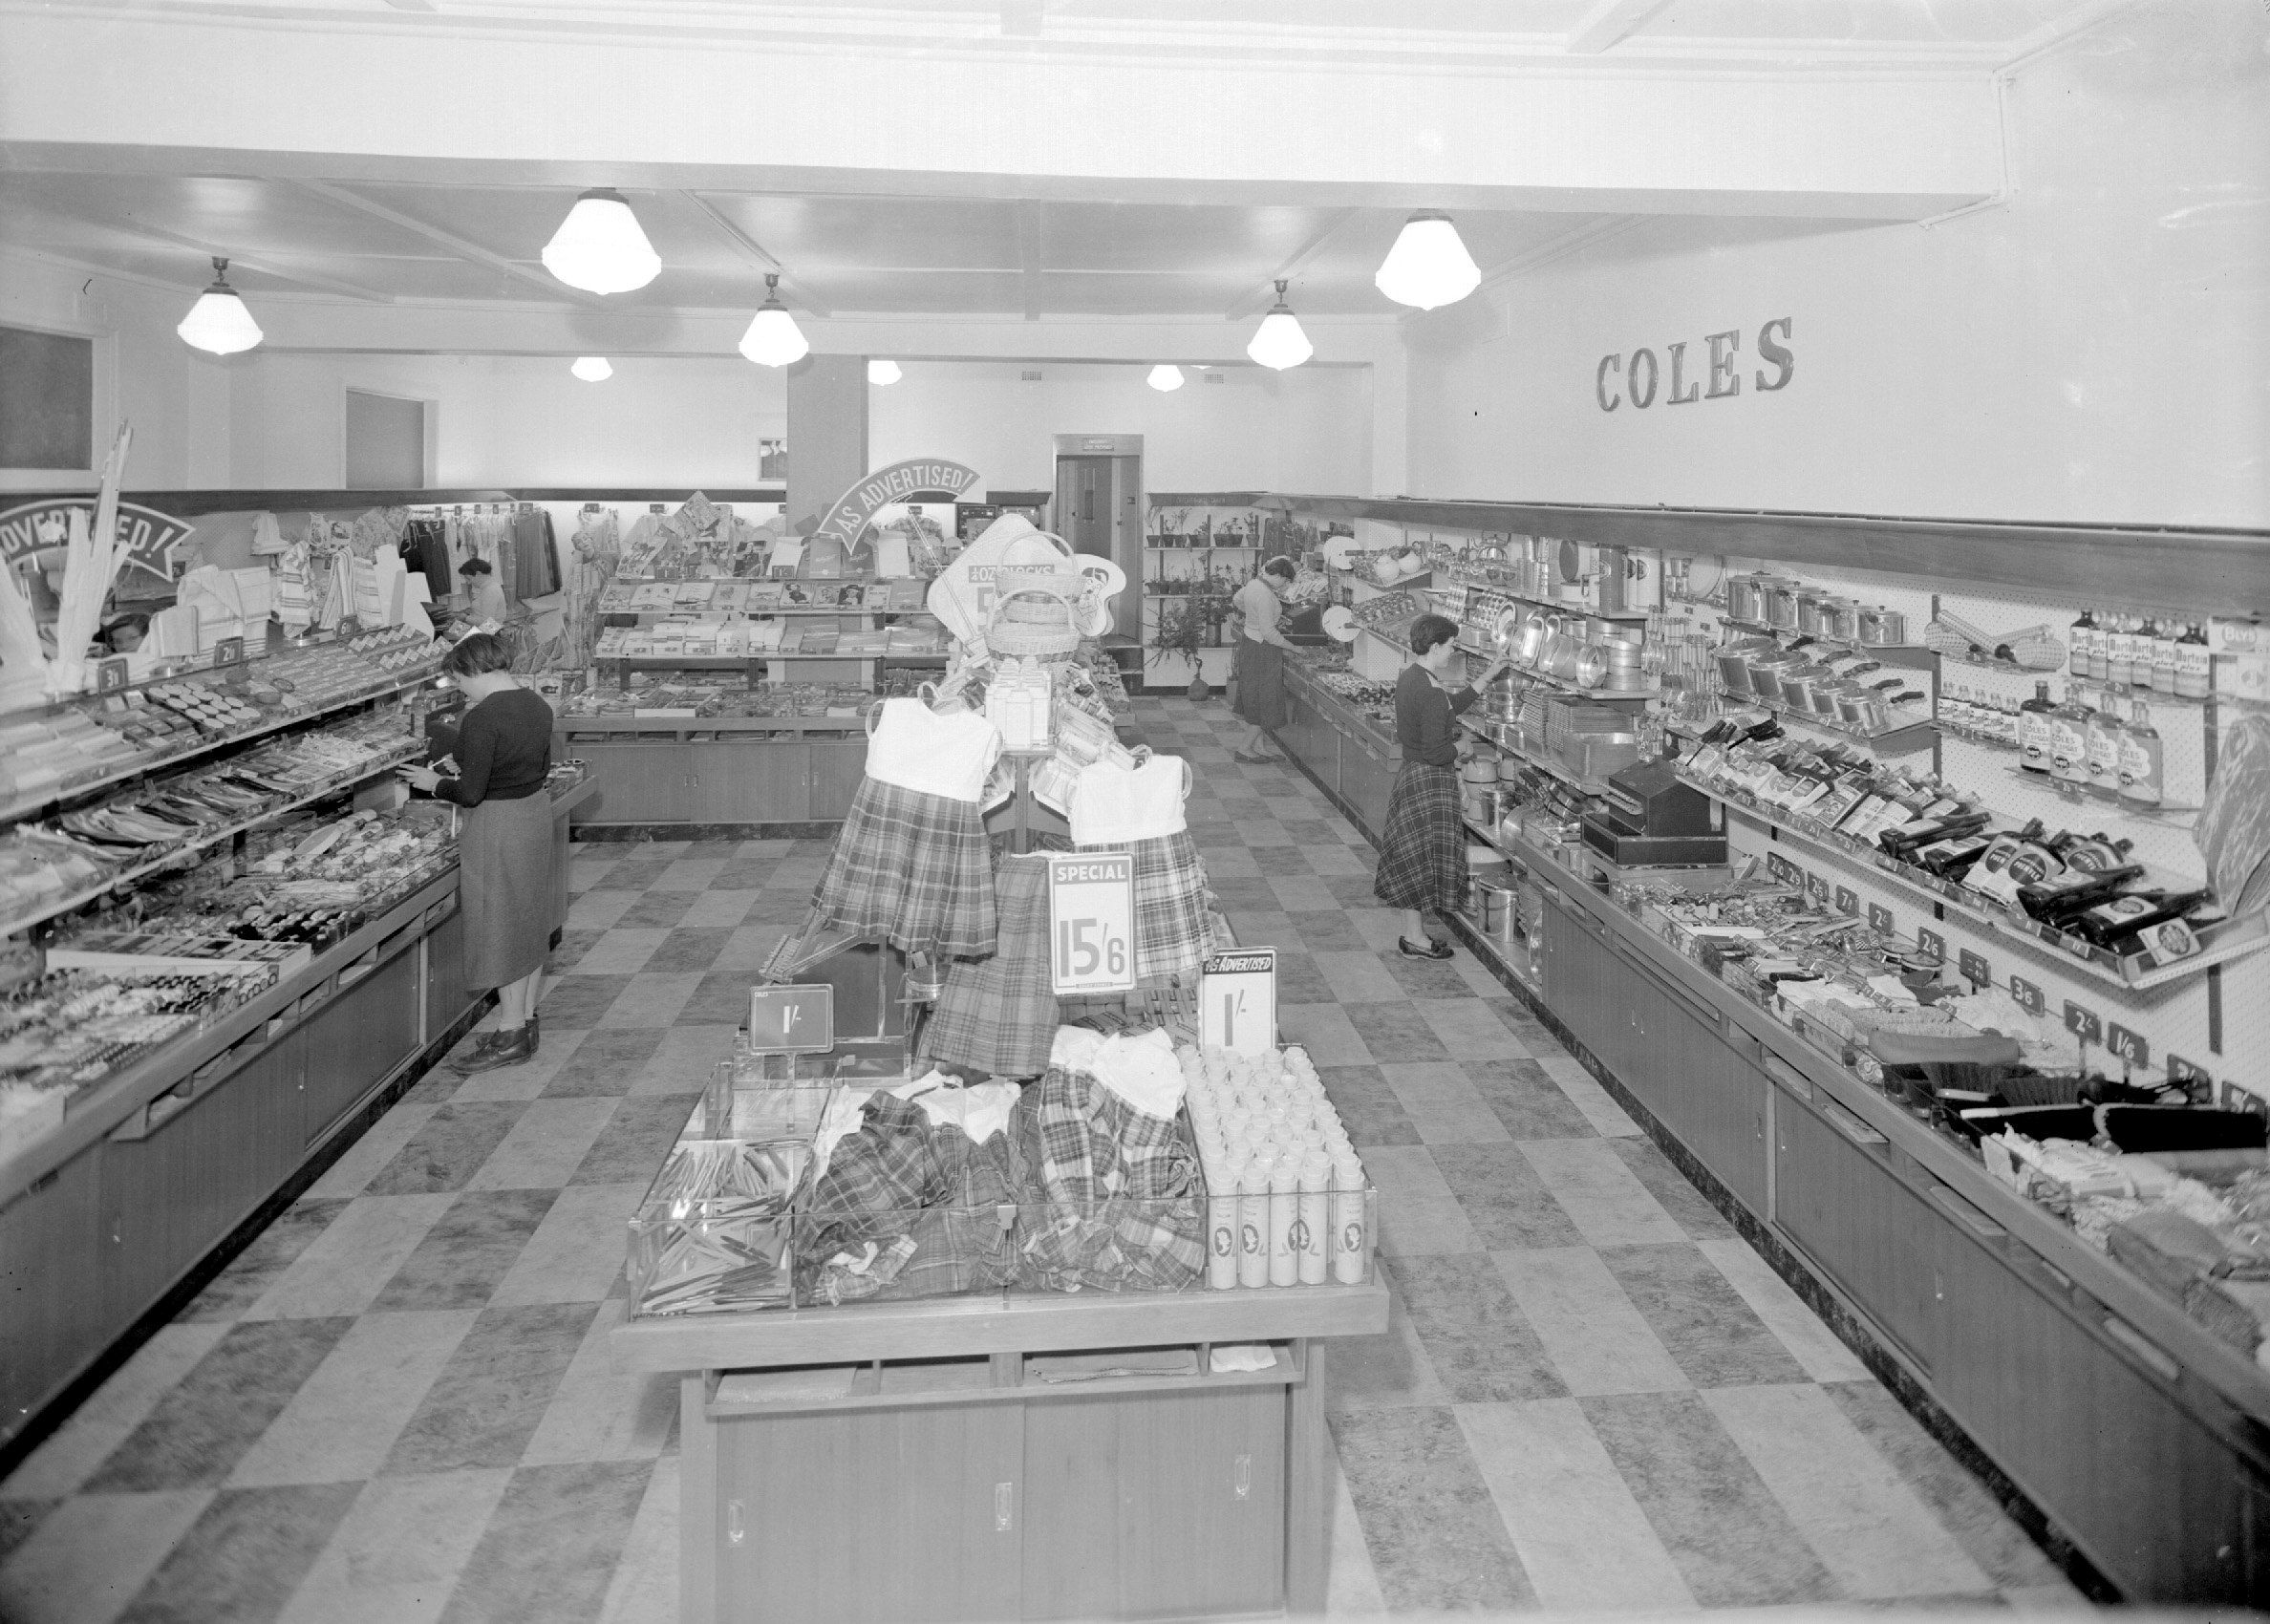 Shopping in Coles in the 1950's Vintage mall, Melbourne